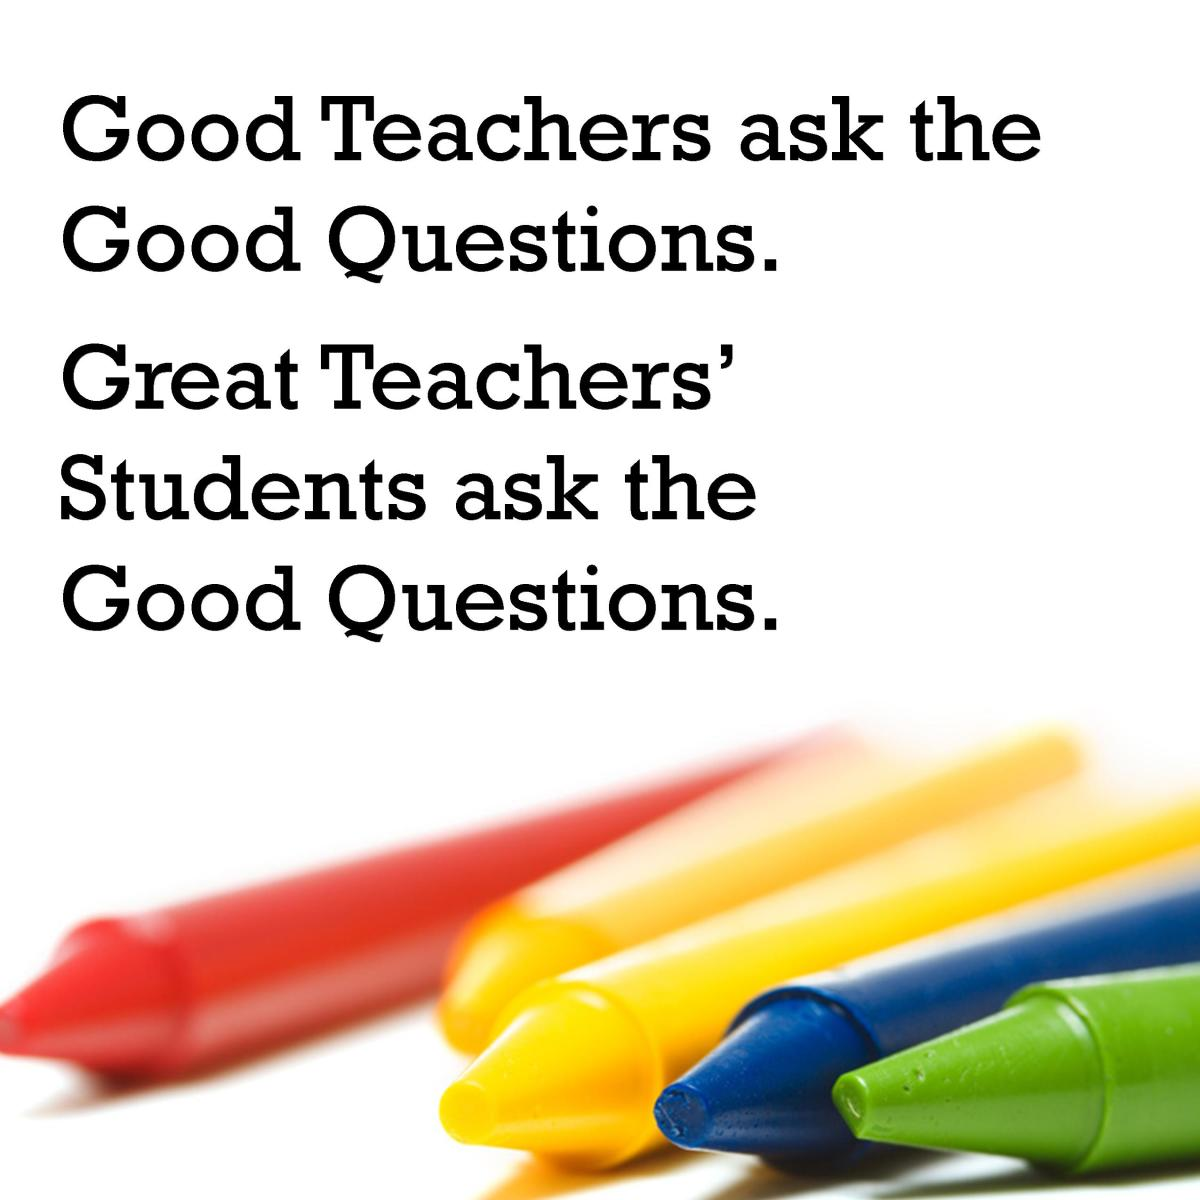 Using a saying or quote about good teachers is a great way to express your gratitude for all your educator has done for you.